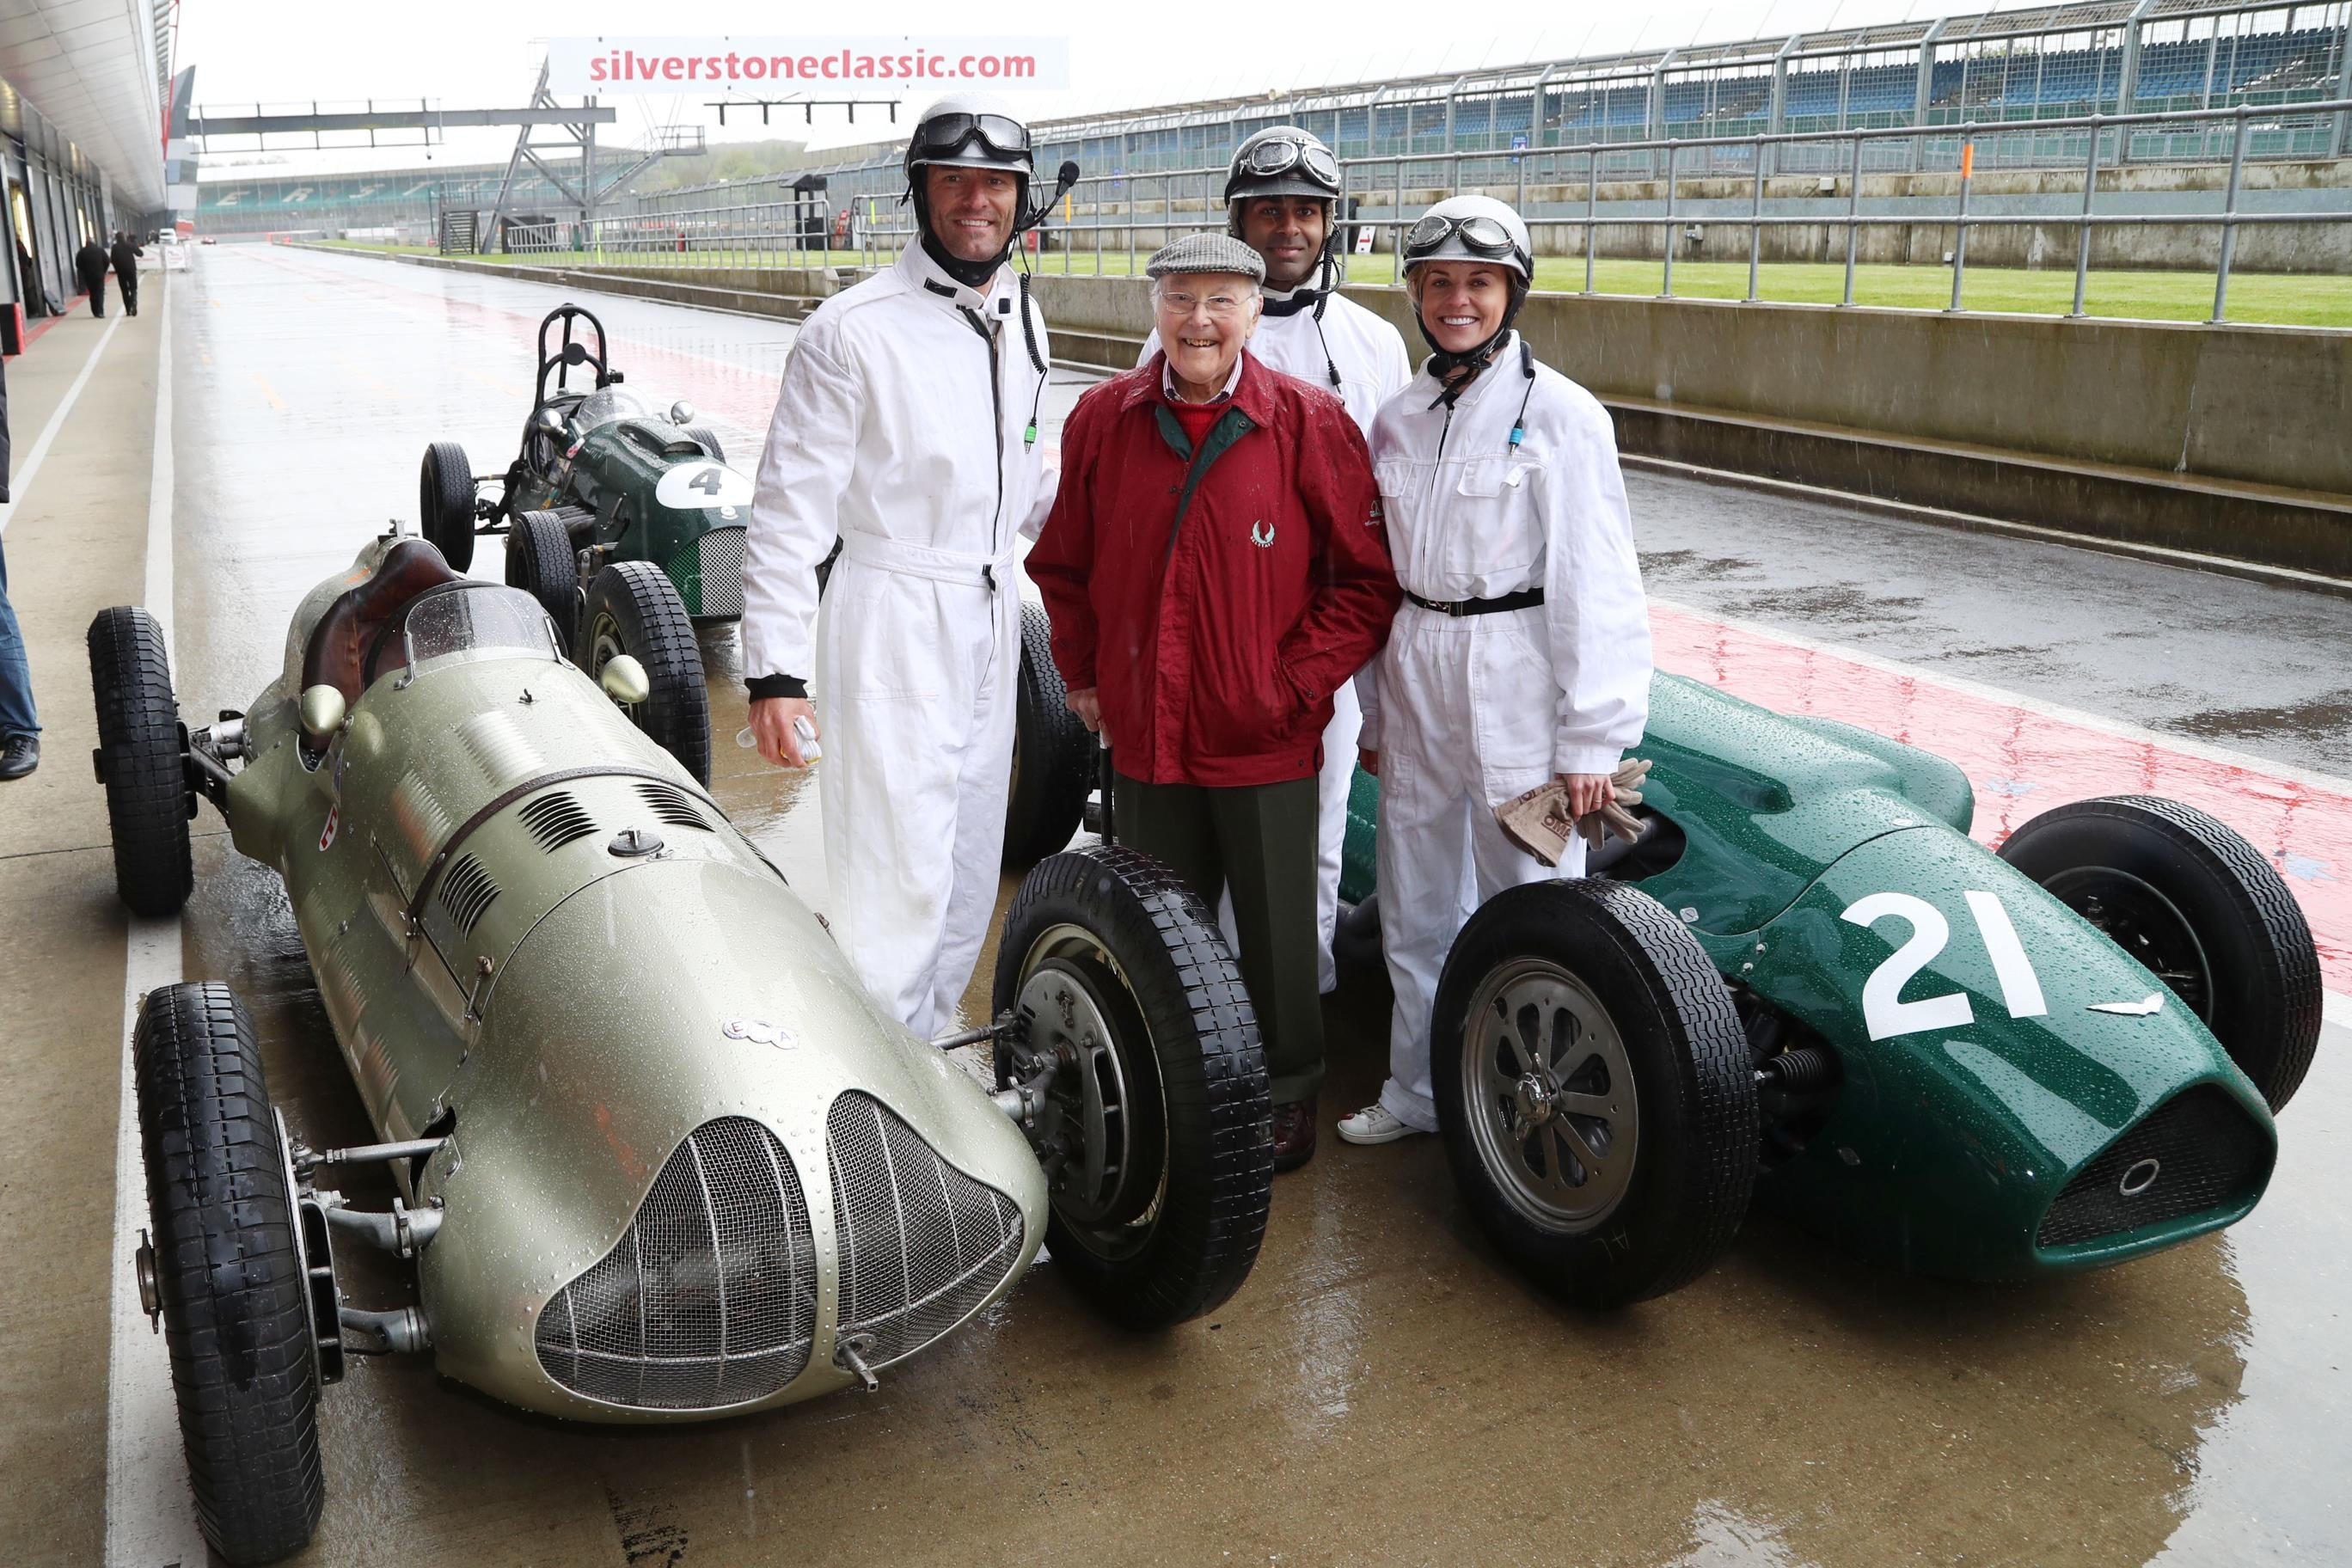 Now Tv F1 Pass Stars And Cars Steal The Show At Silverstone Classic